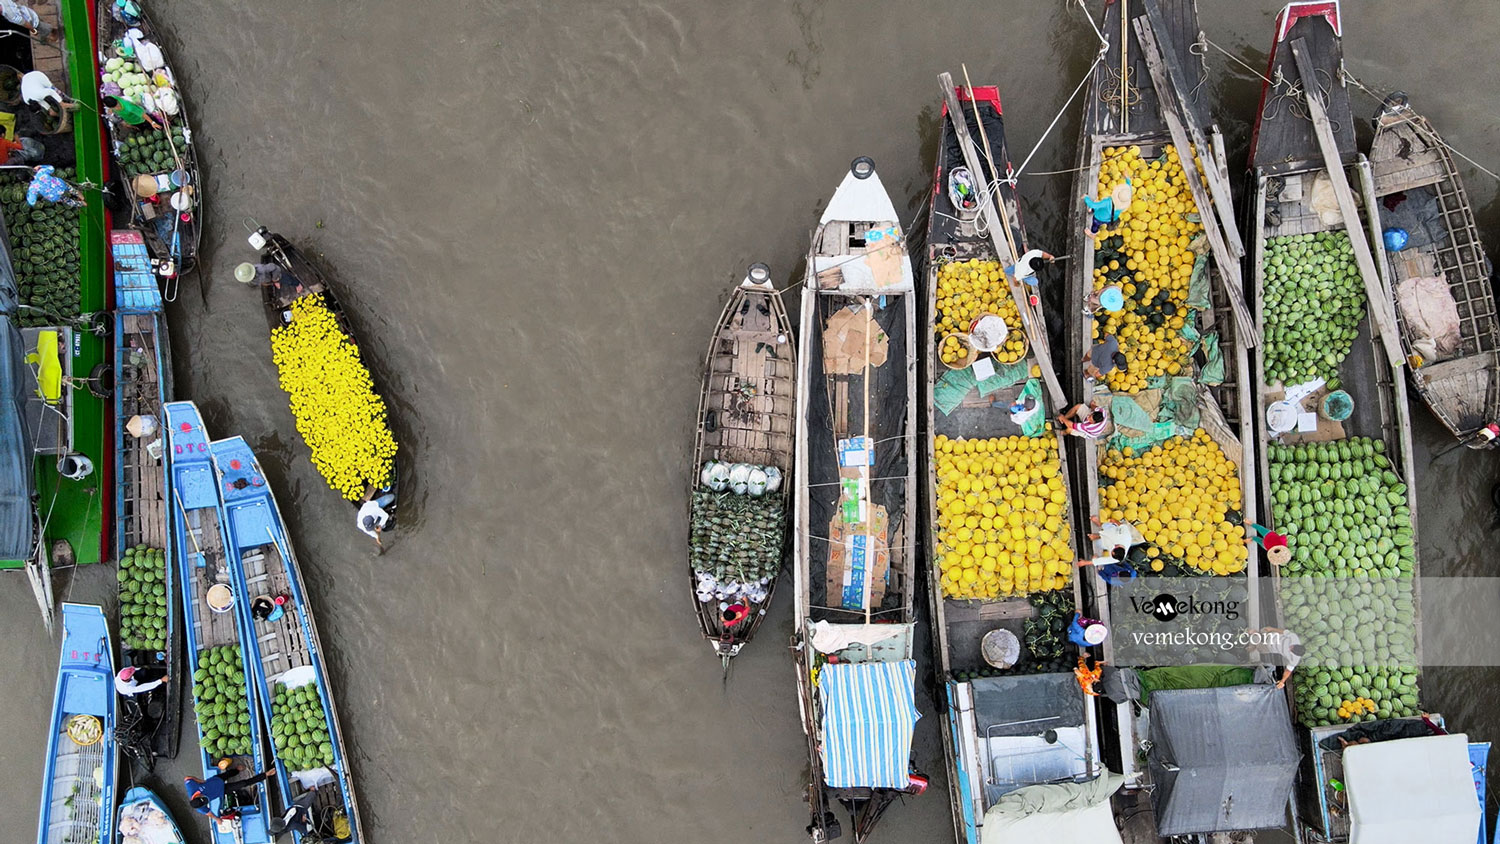 Cai Rang floating market in February and Tet Holiday